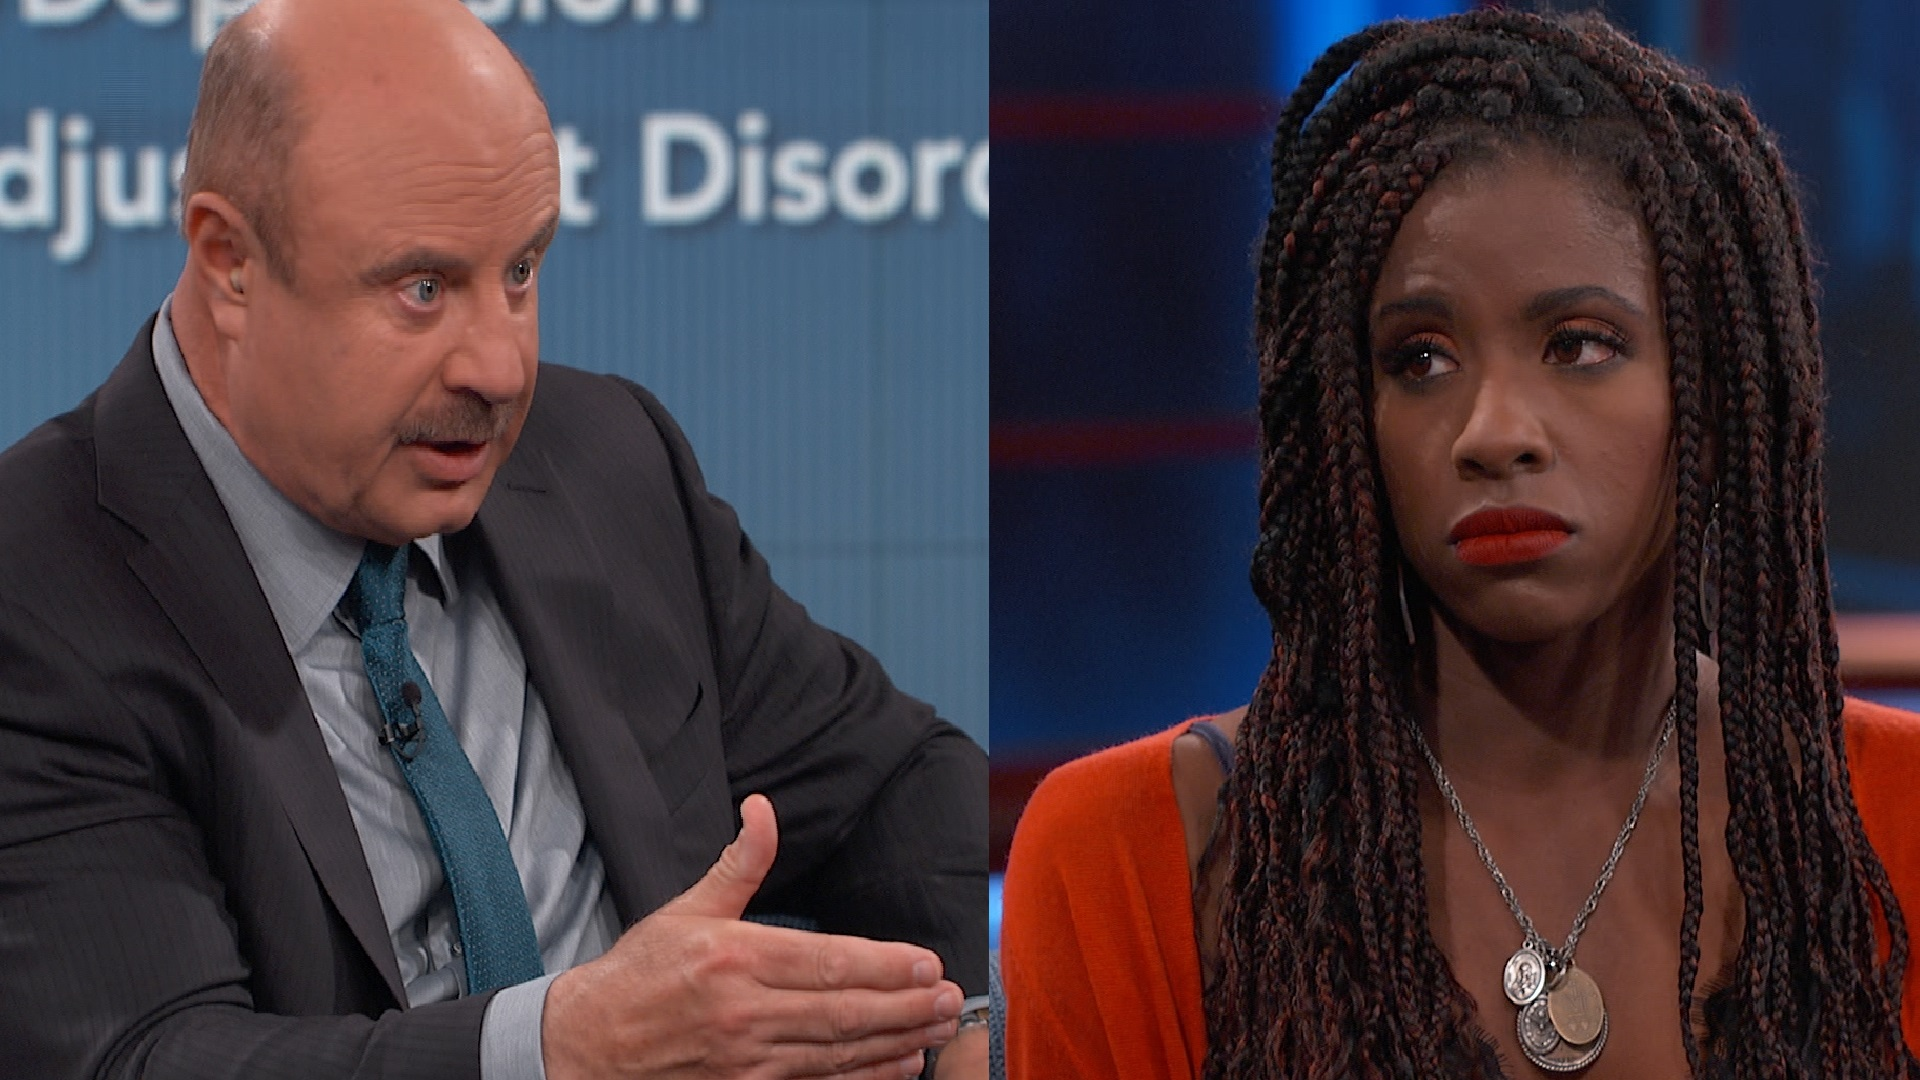 Dr. Phil To Guest: 'Do You Think Right Now, That Your Life Is Working?'